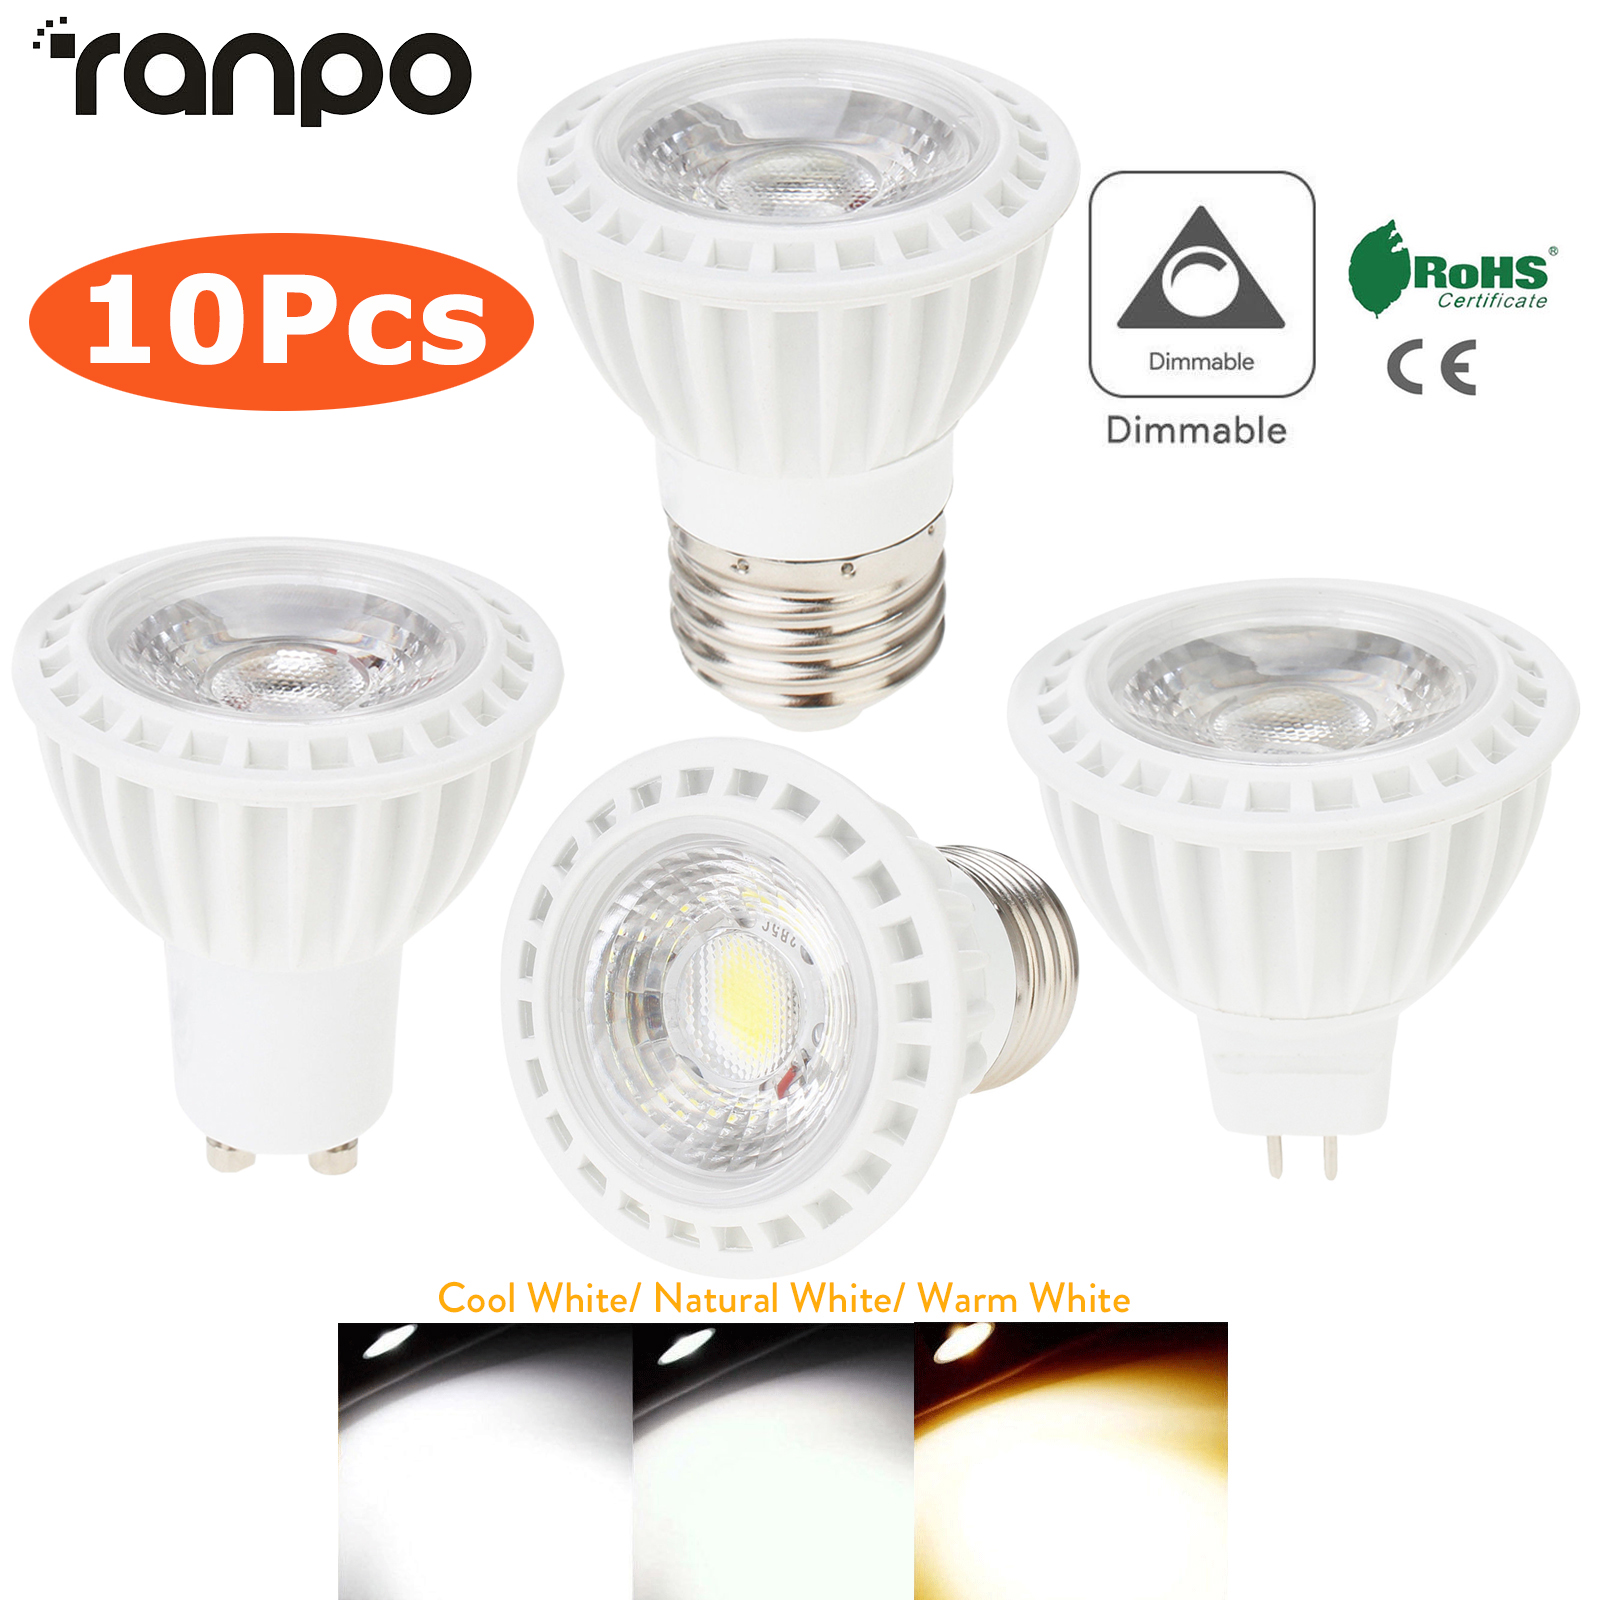 10pcs Dimmable <font><b>LED</b></font> Spotlights E26 <font><b>E27</b></font> GU10 MR16 15W COB Light <font><b>Bulbs</b></font> 45° Beam Angle 110V 220V DC <font><b>12V</b></font> for Home Office Table Lamp image